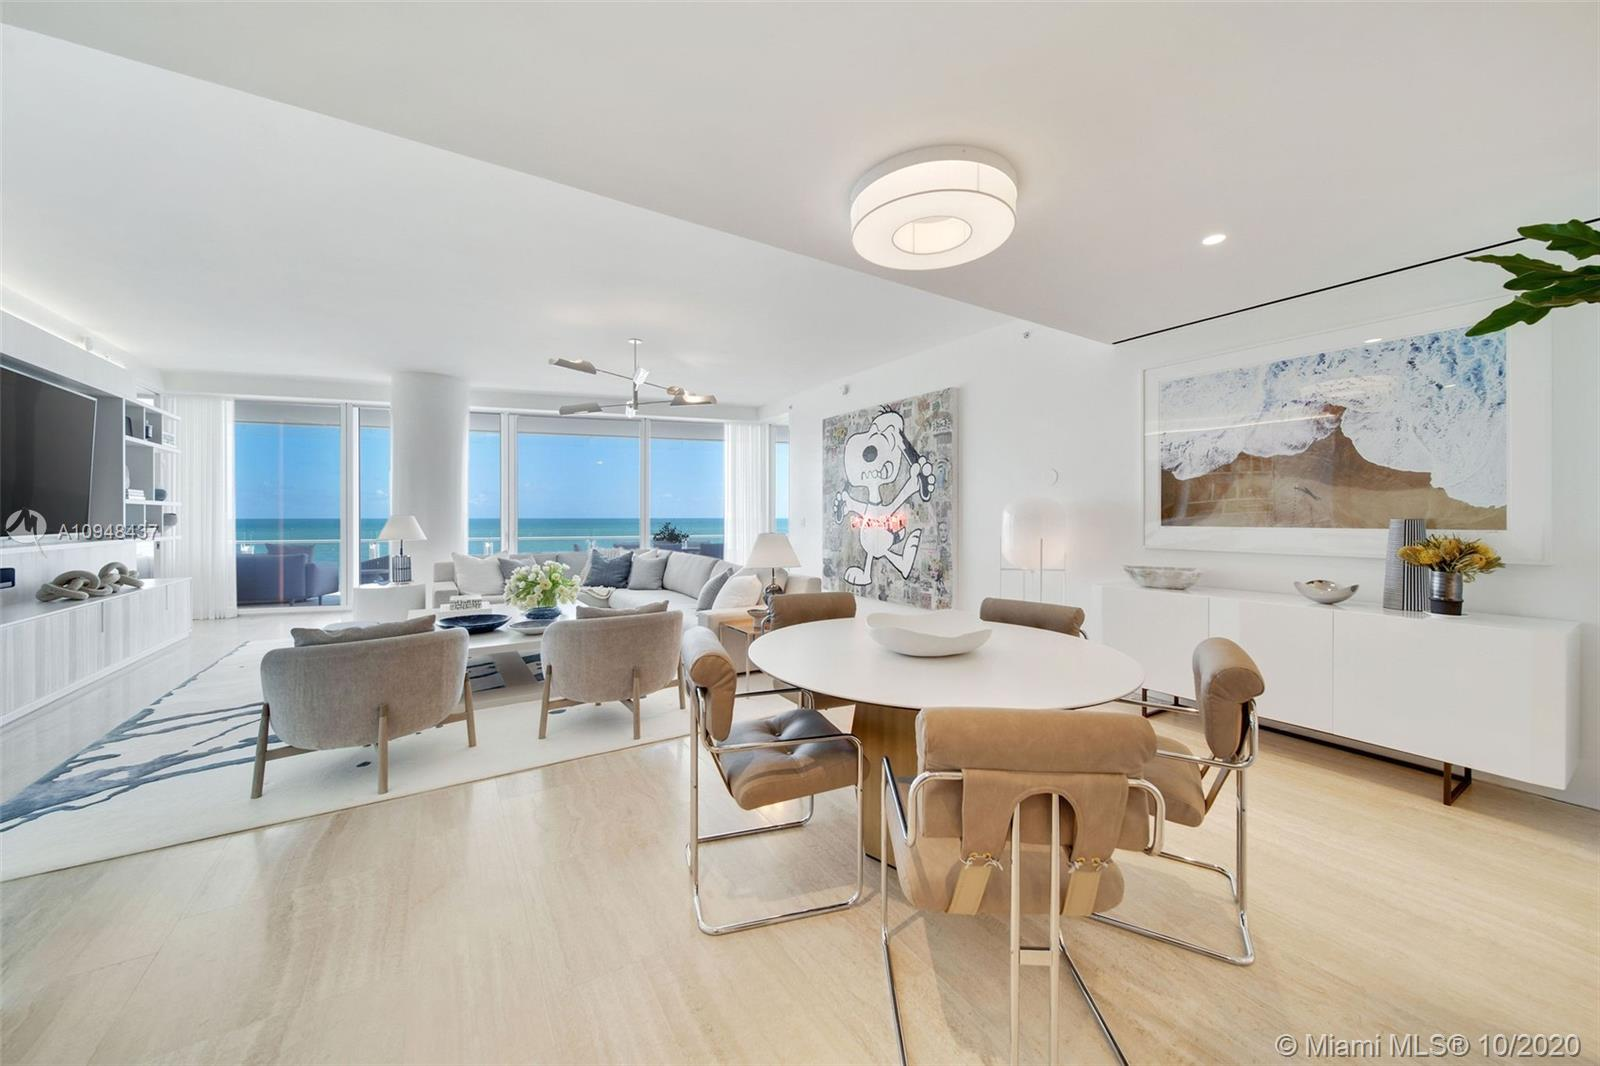 9001 Collins Ave, Unit #S-709 Luxury Real Estate